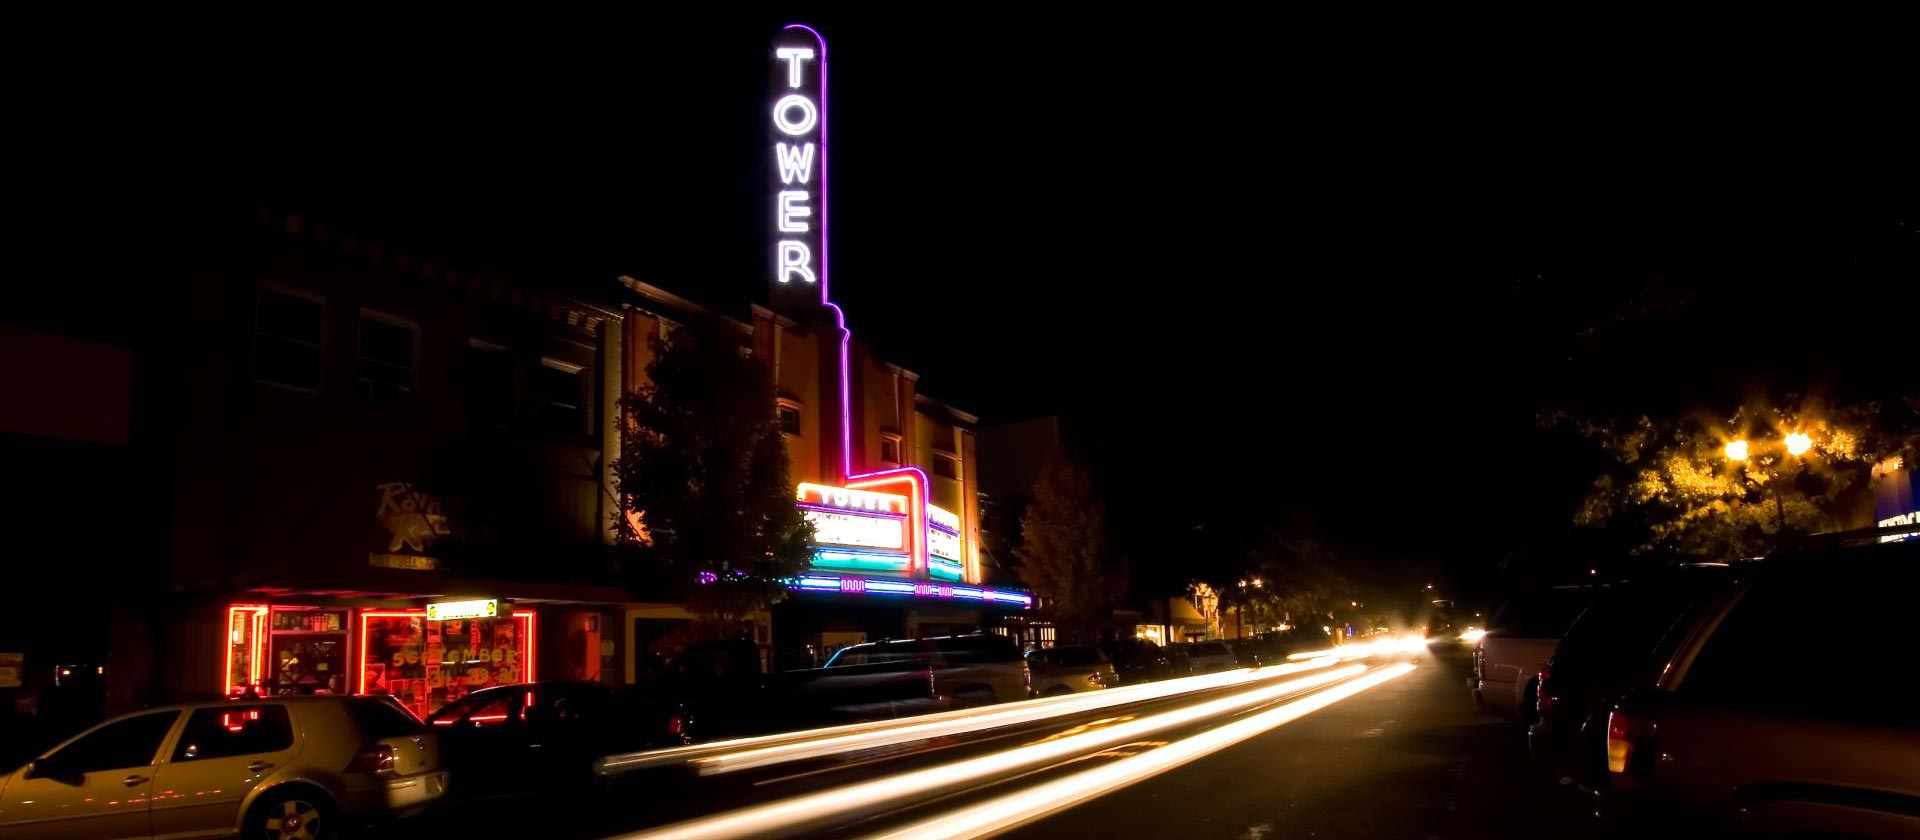 Tower Theater at night with vehicle light trails in the foreground